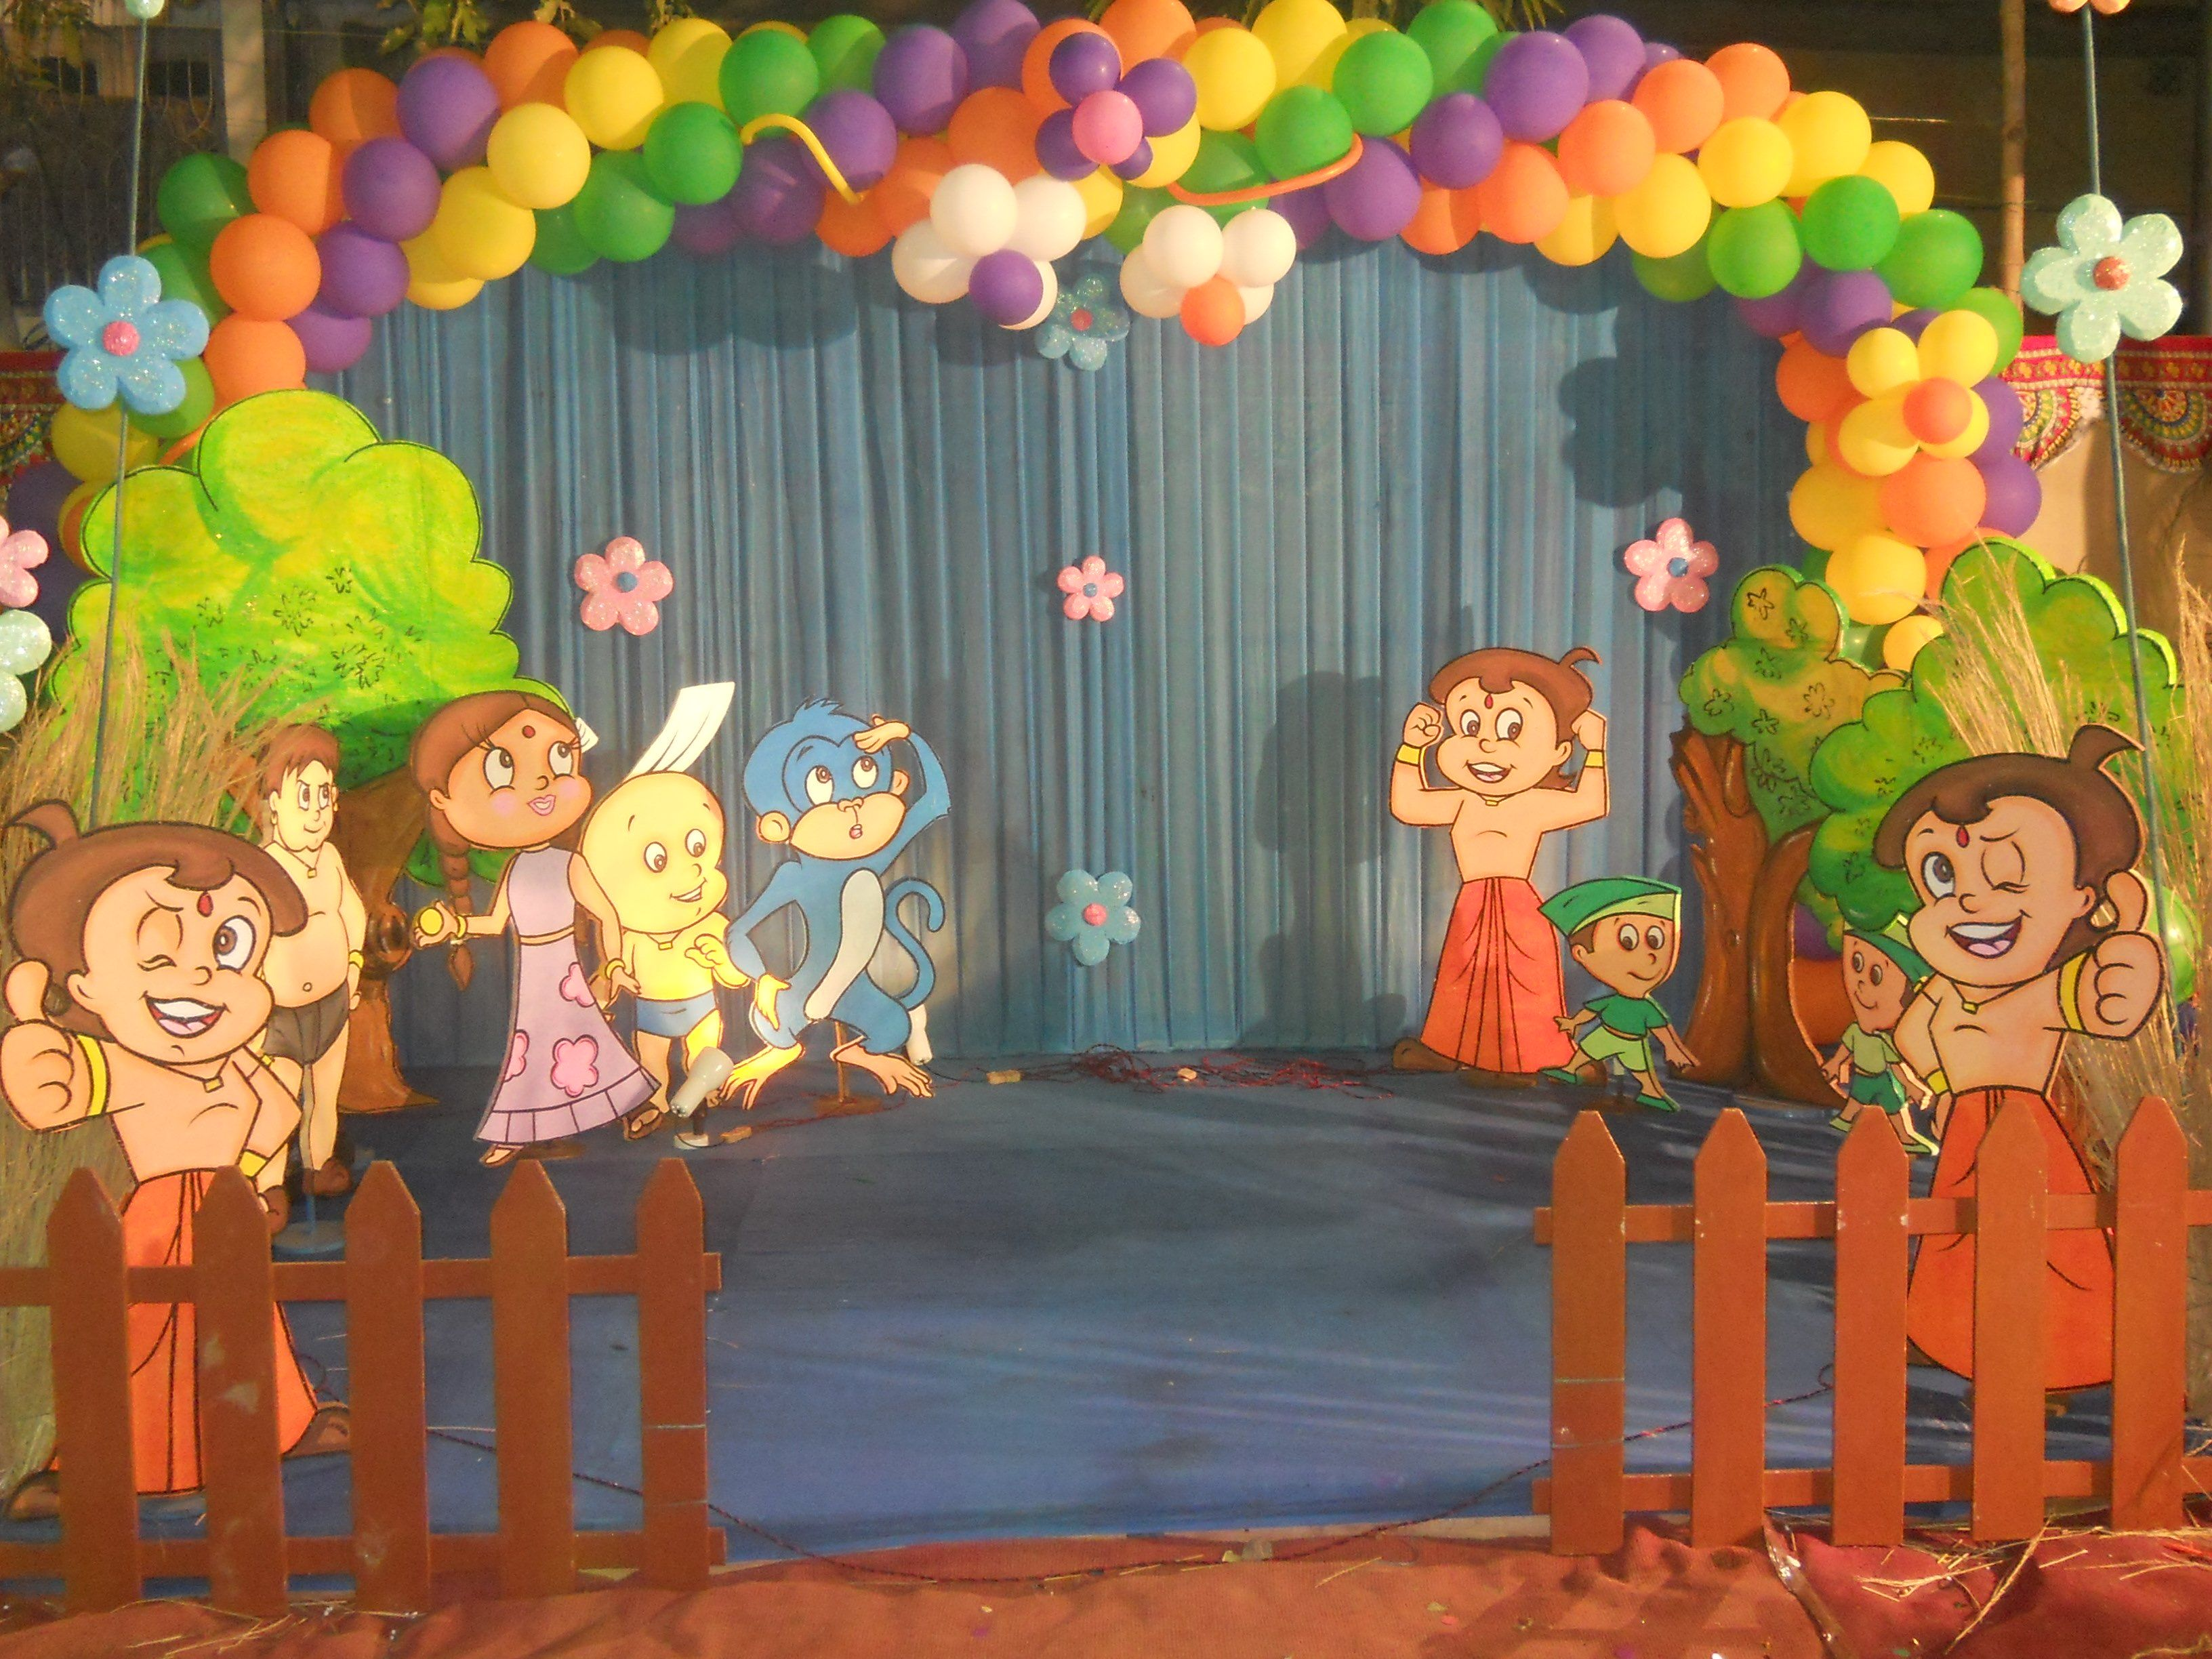 Chhota Bheem Theme 4 Stars Most Beautiful Birthday Party Themes